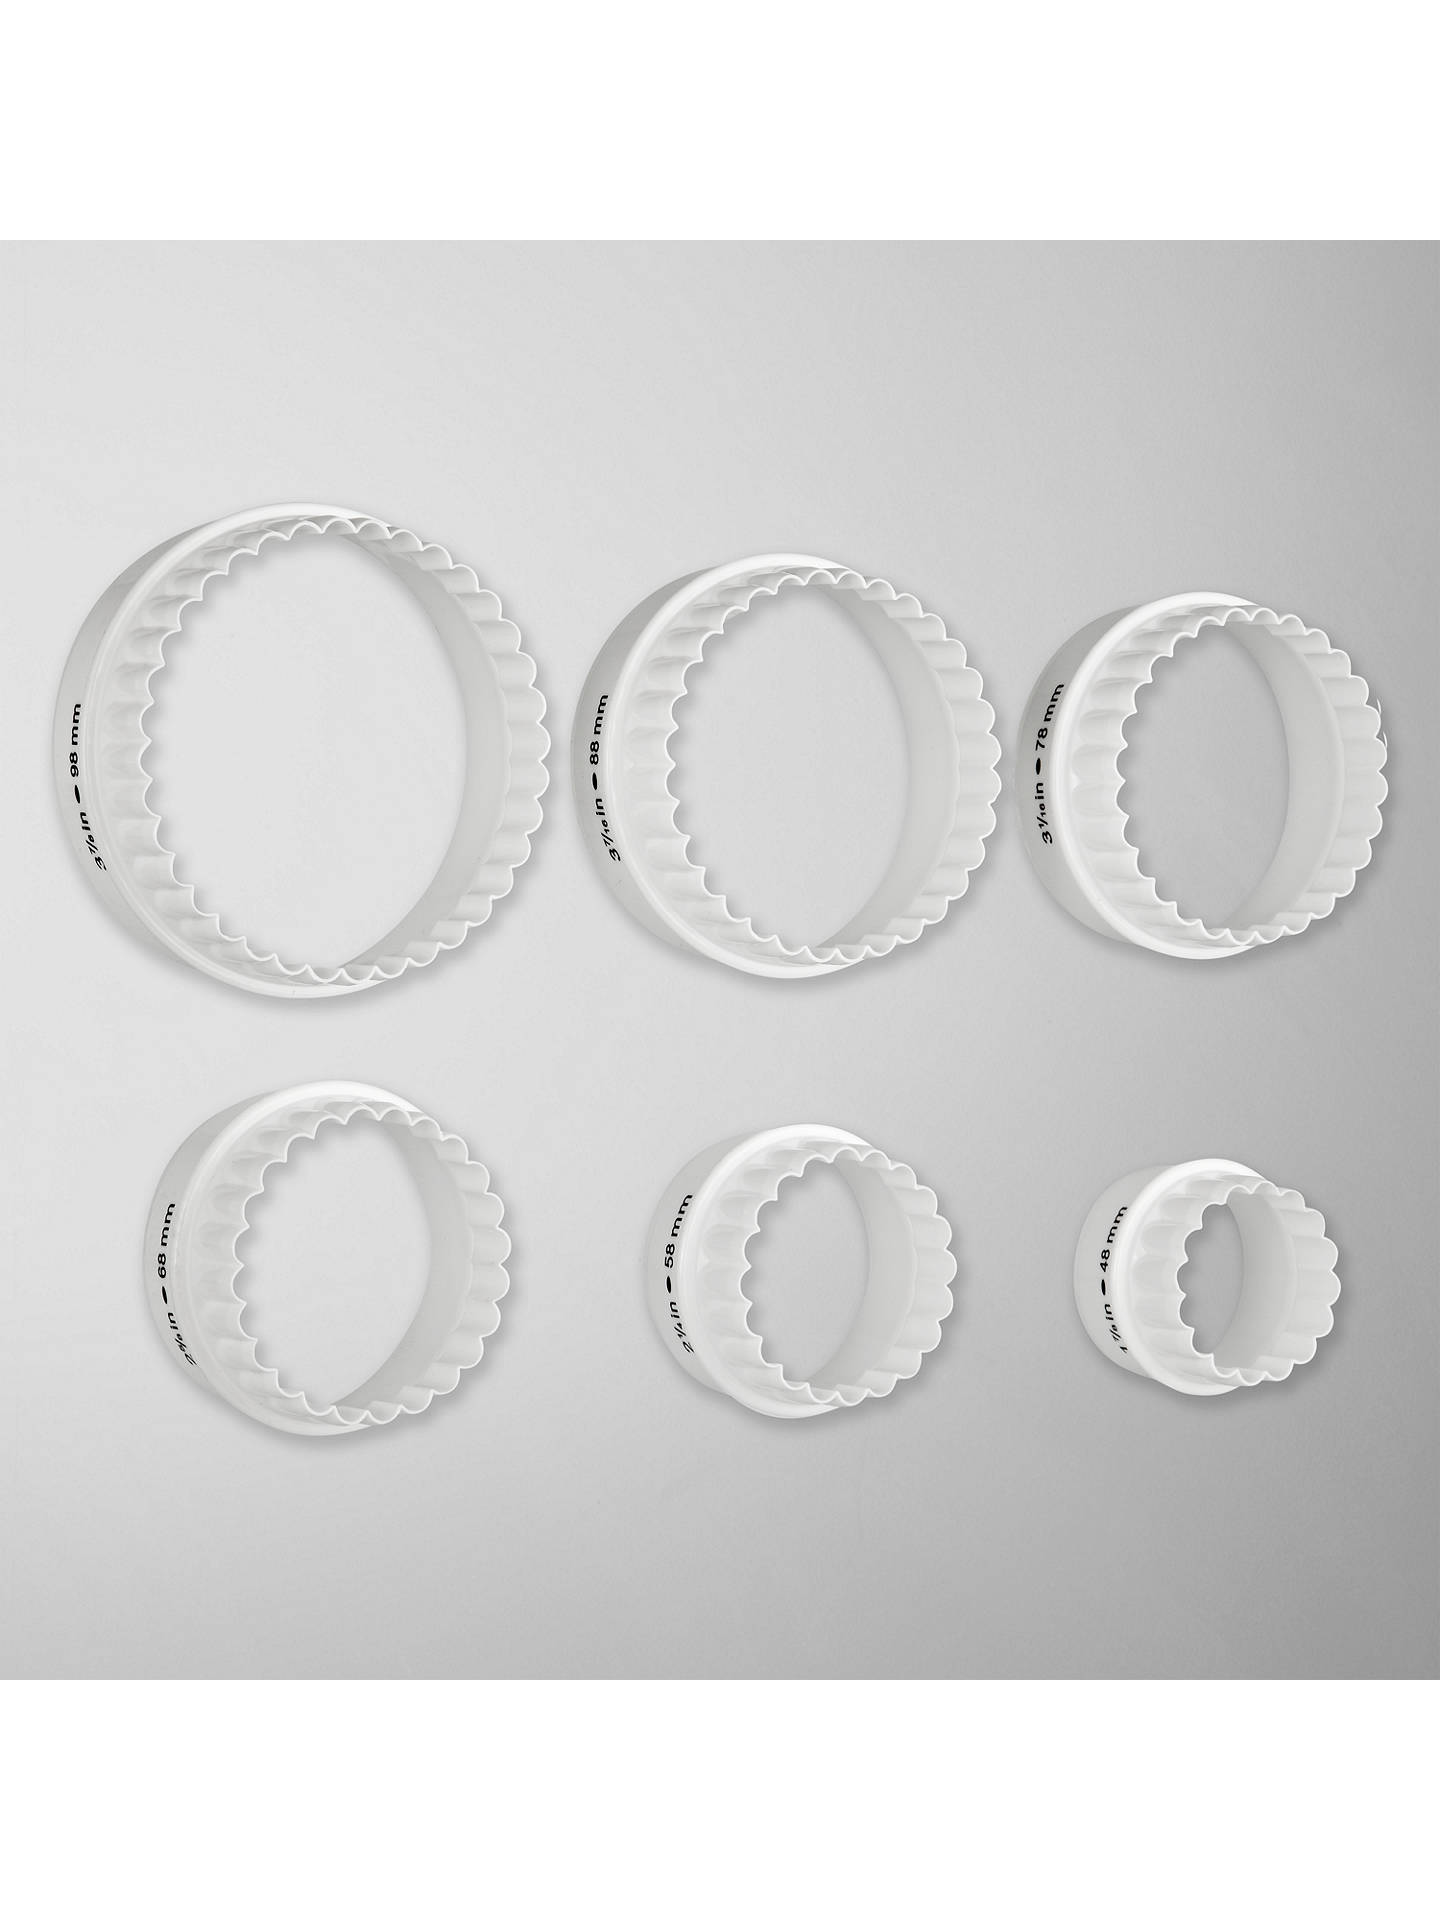 Buy John Lewis & Partners Double Sided Cookie & Pastry Cutters, Set of 6 Online at johnlewis.com